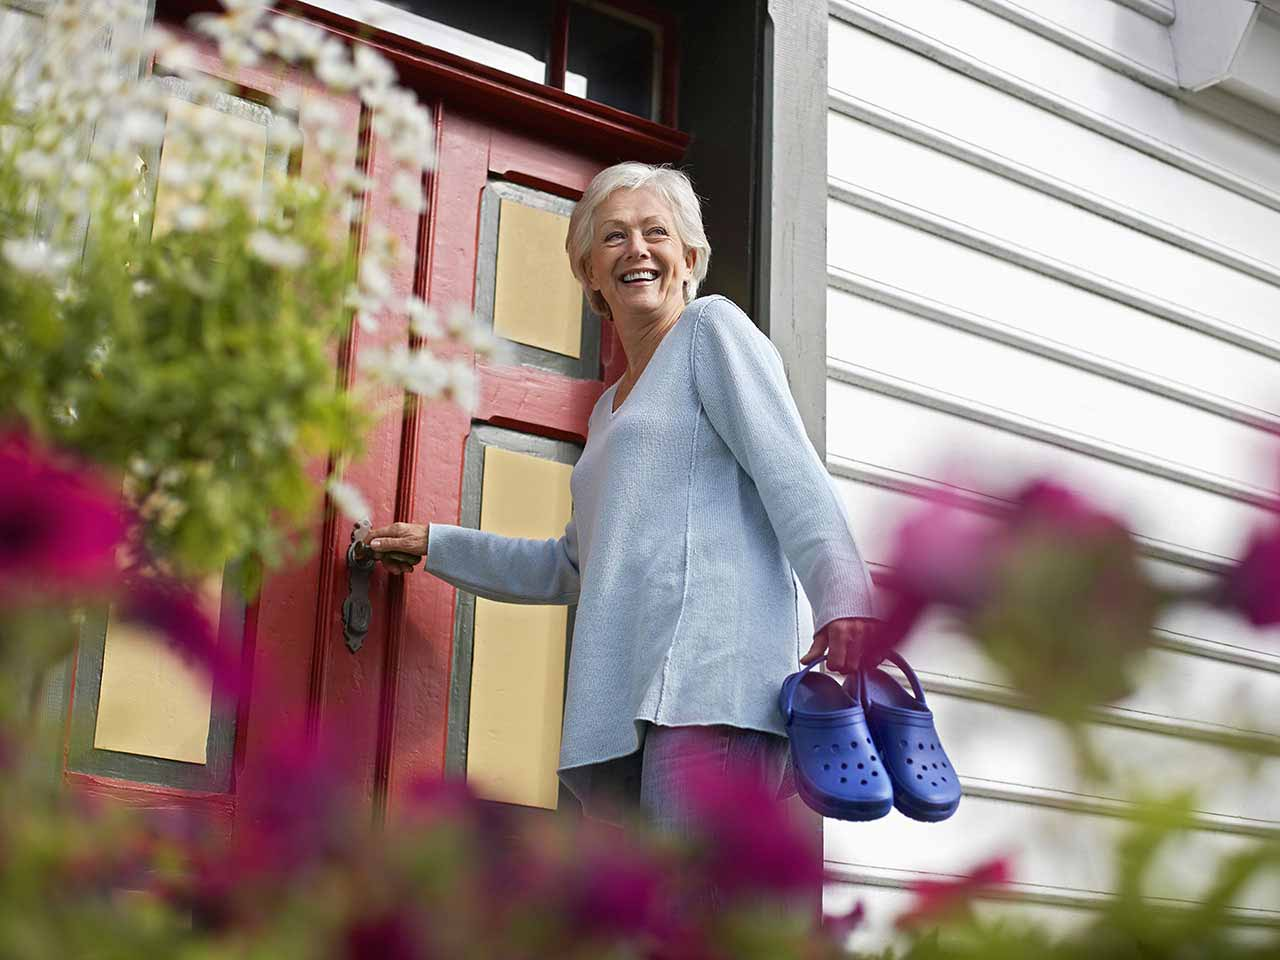 Mature woman entering house